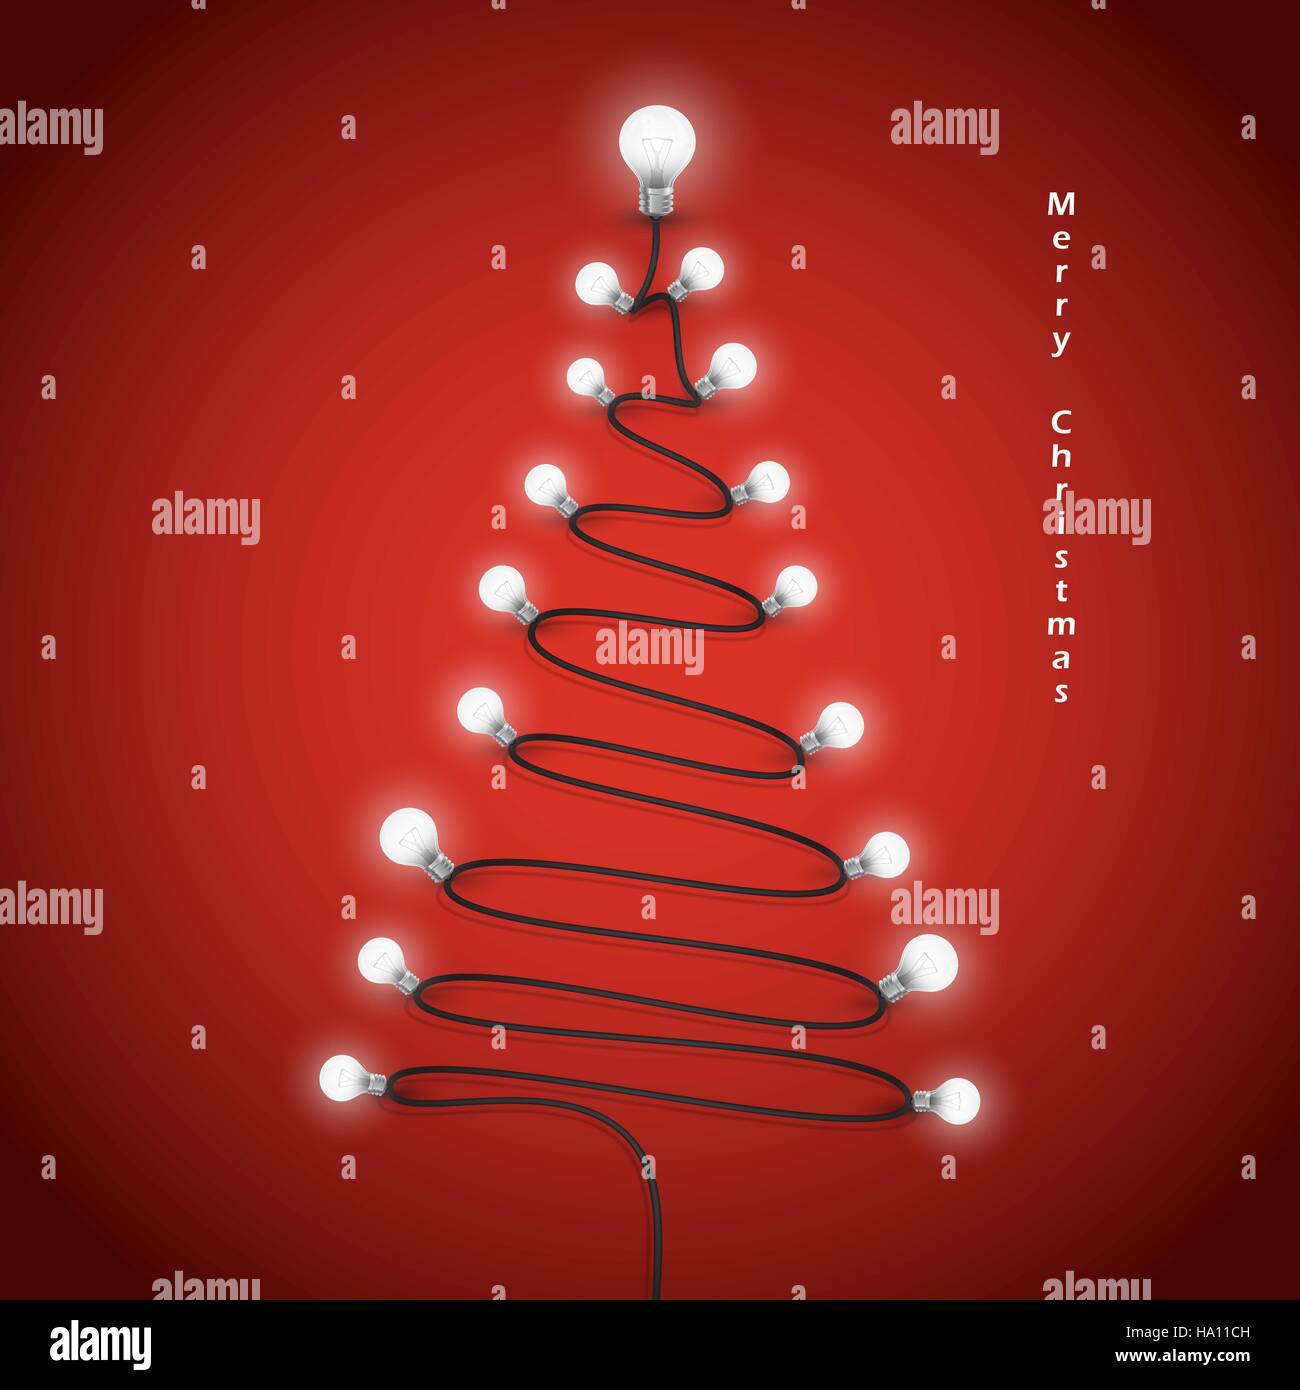 Colorful Christmas Background Design.Colorful Light Bulbs And Christmas Tree Symbol Merry